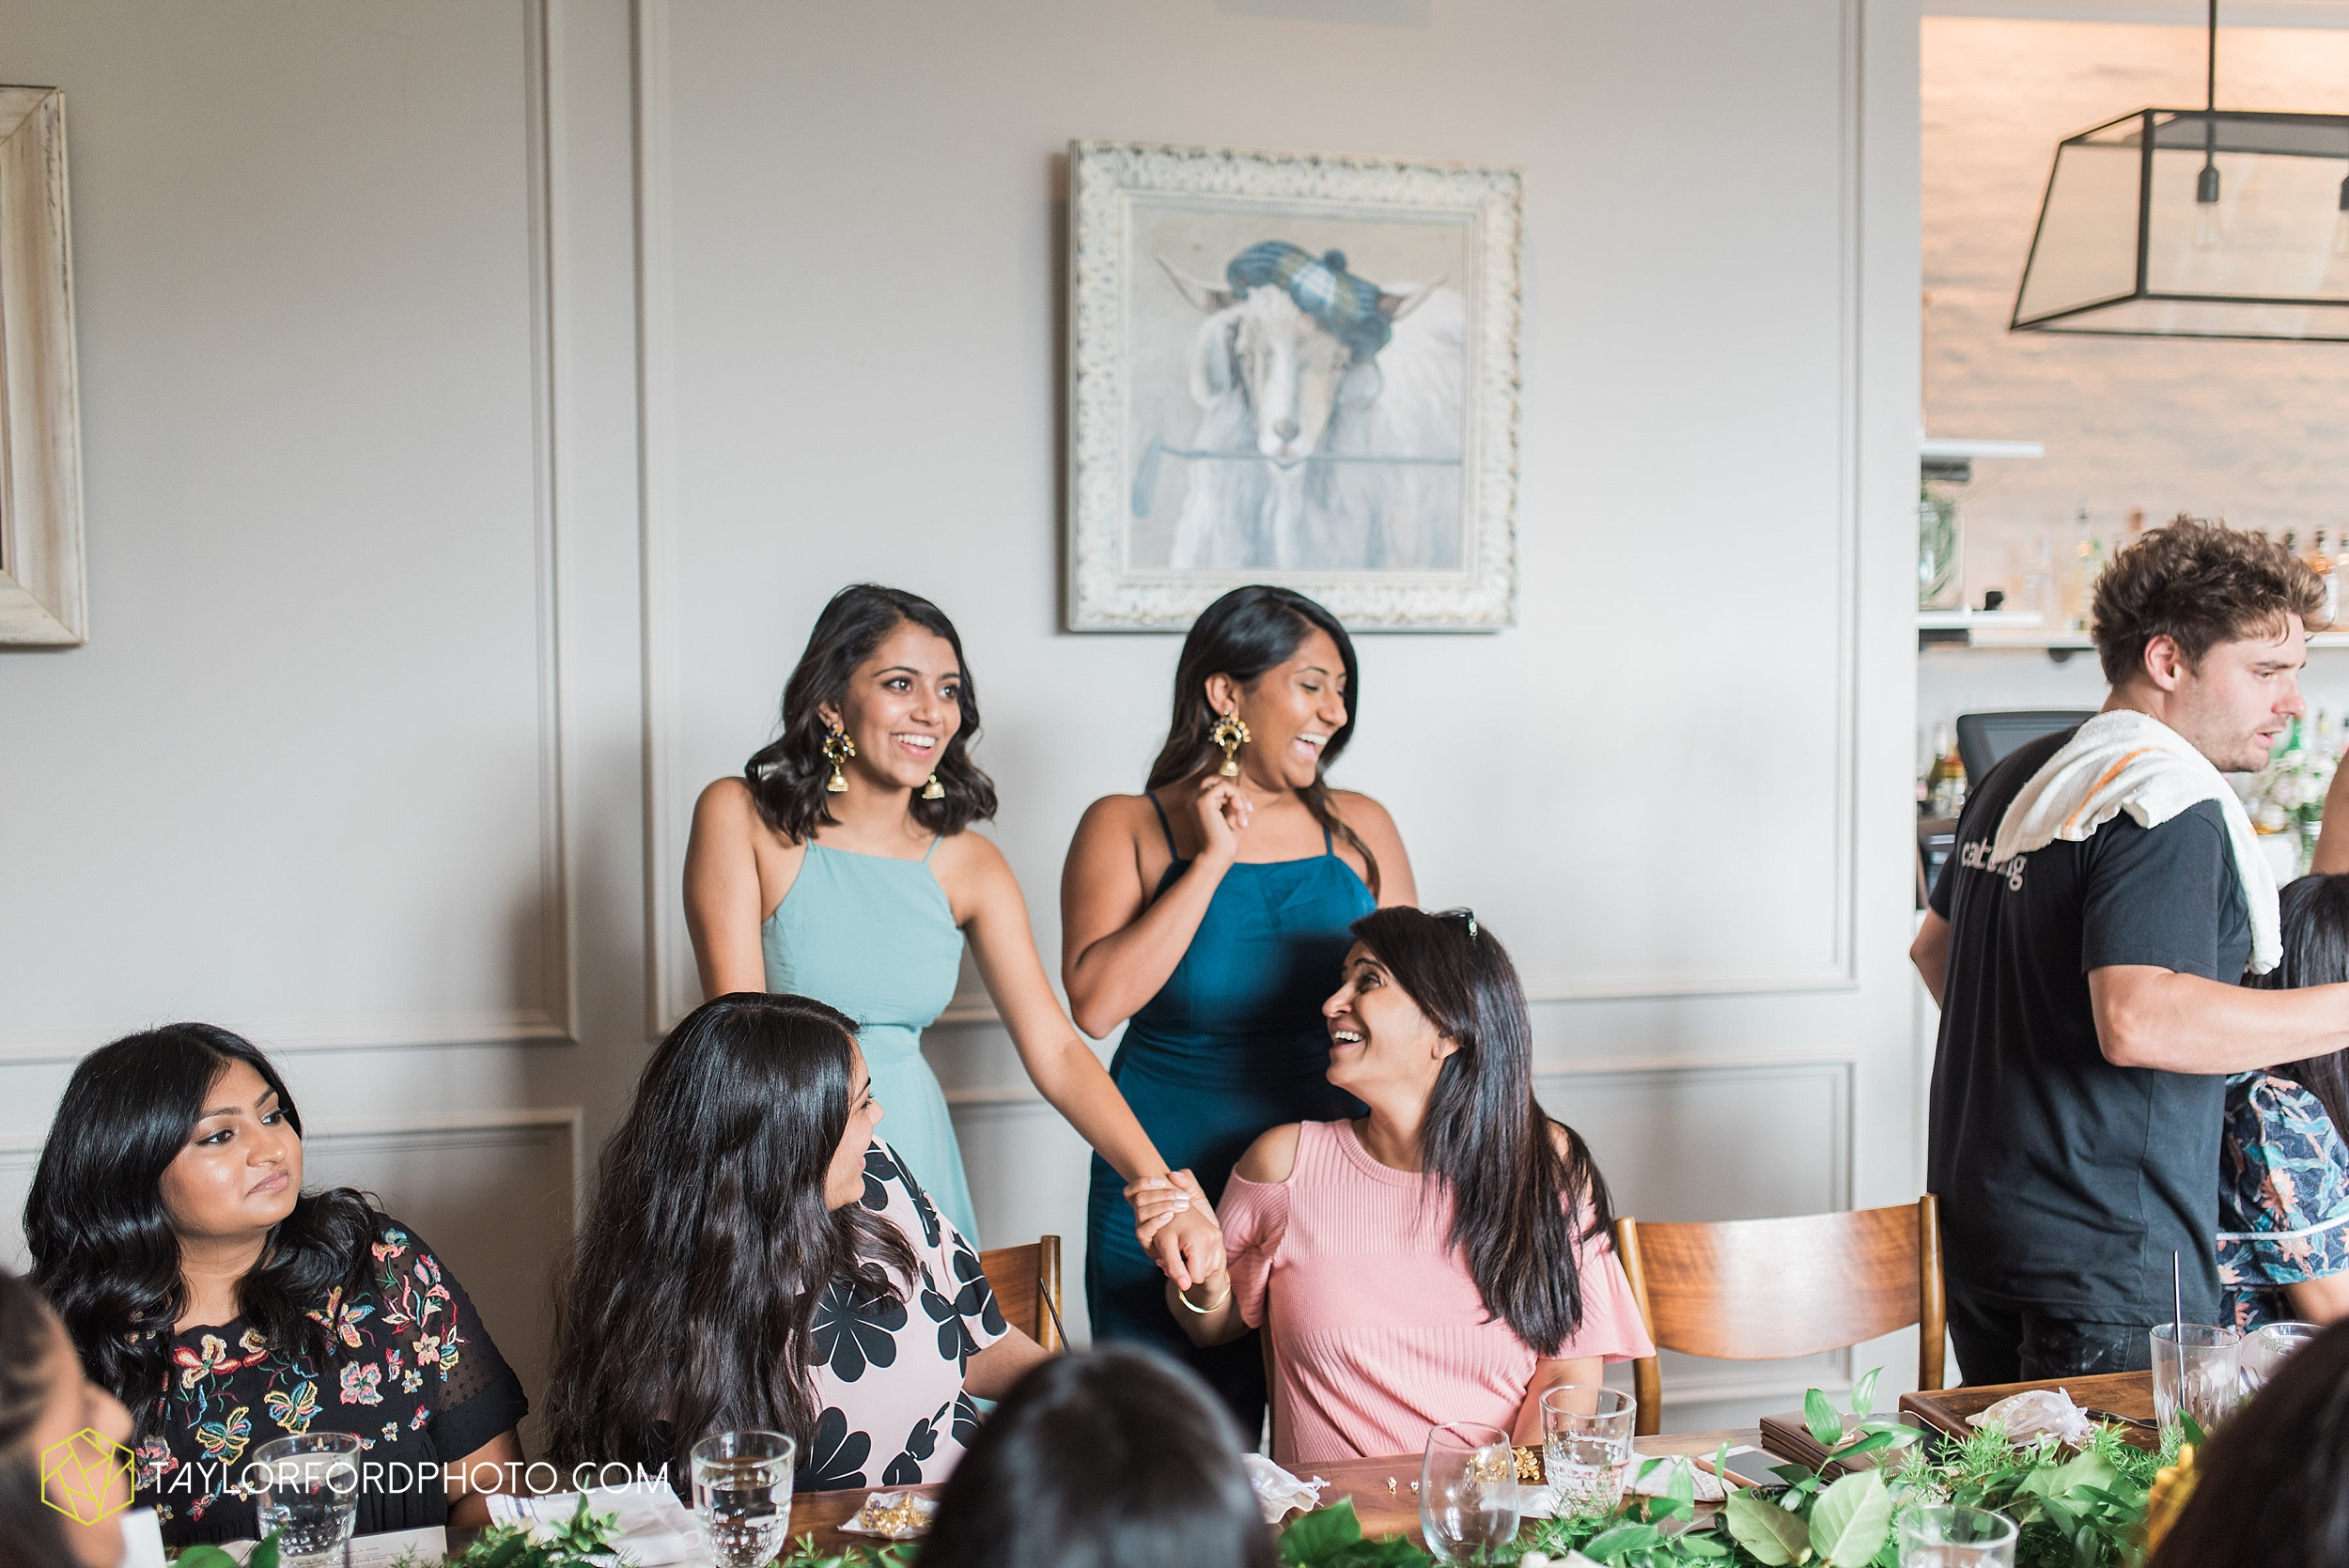 chicago-illinois-bridal-shower-wedding-engagement-photographer-Taylor-Ford-Photography-the-little-goat-diner-rooftop-indian-ceremony_5106.jpg